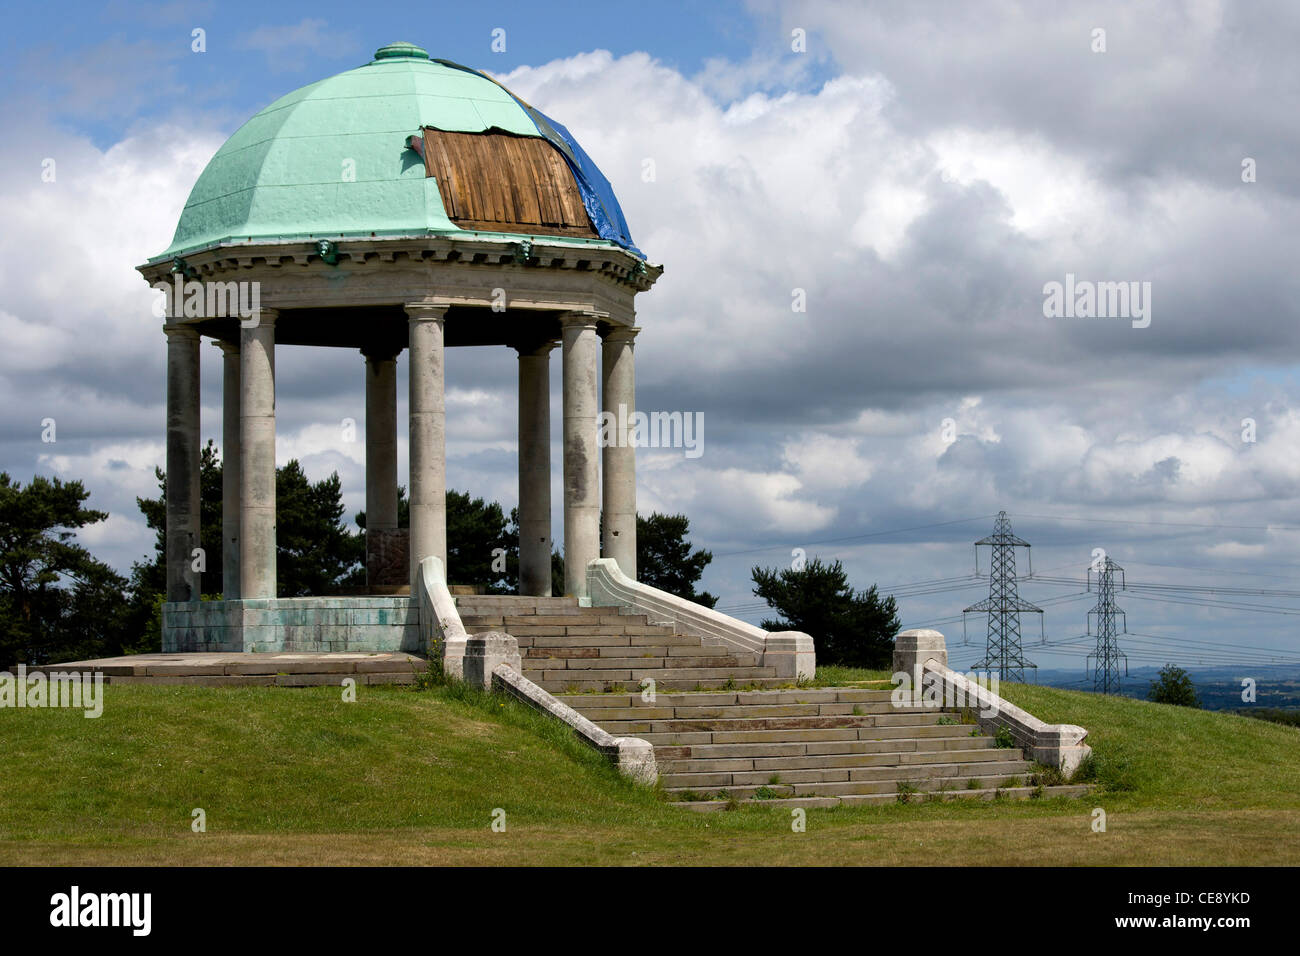 The war memorial in Barr Beacon, Birmingham, after thieves had stolen parts of the copper metal roof. - Stock Image